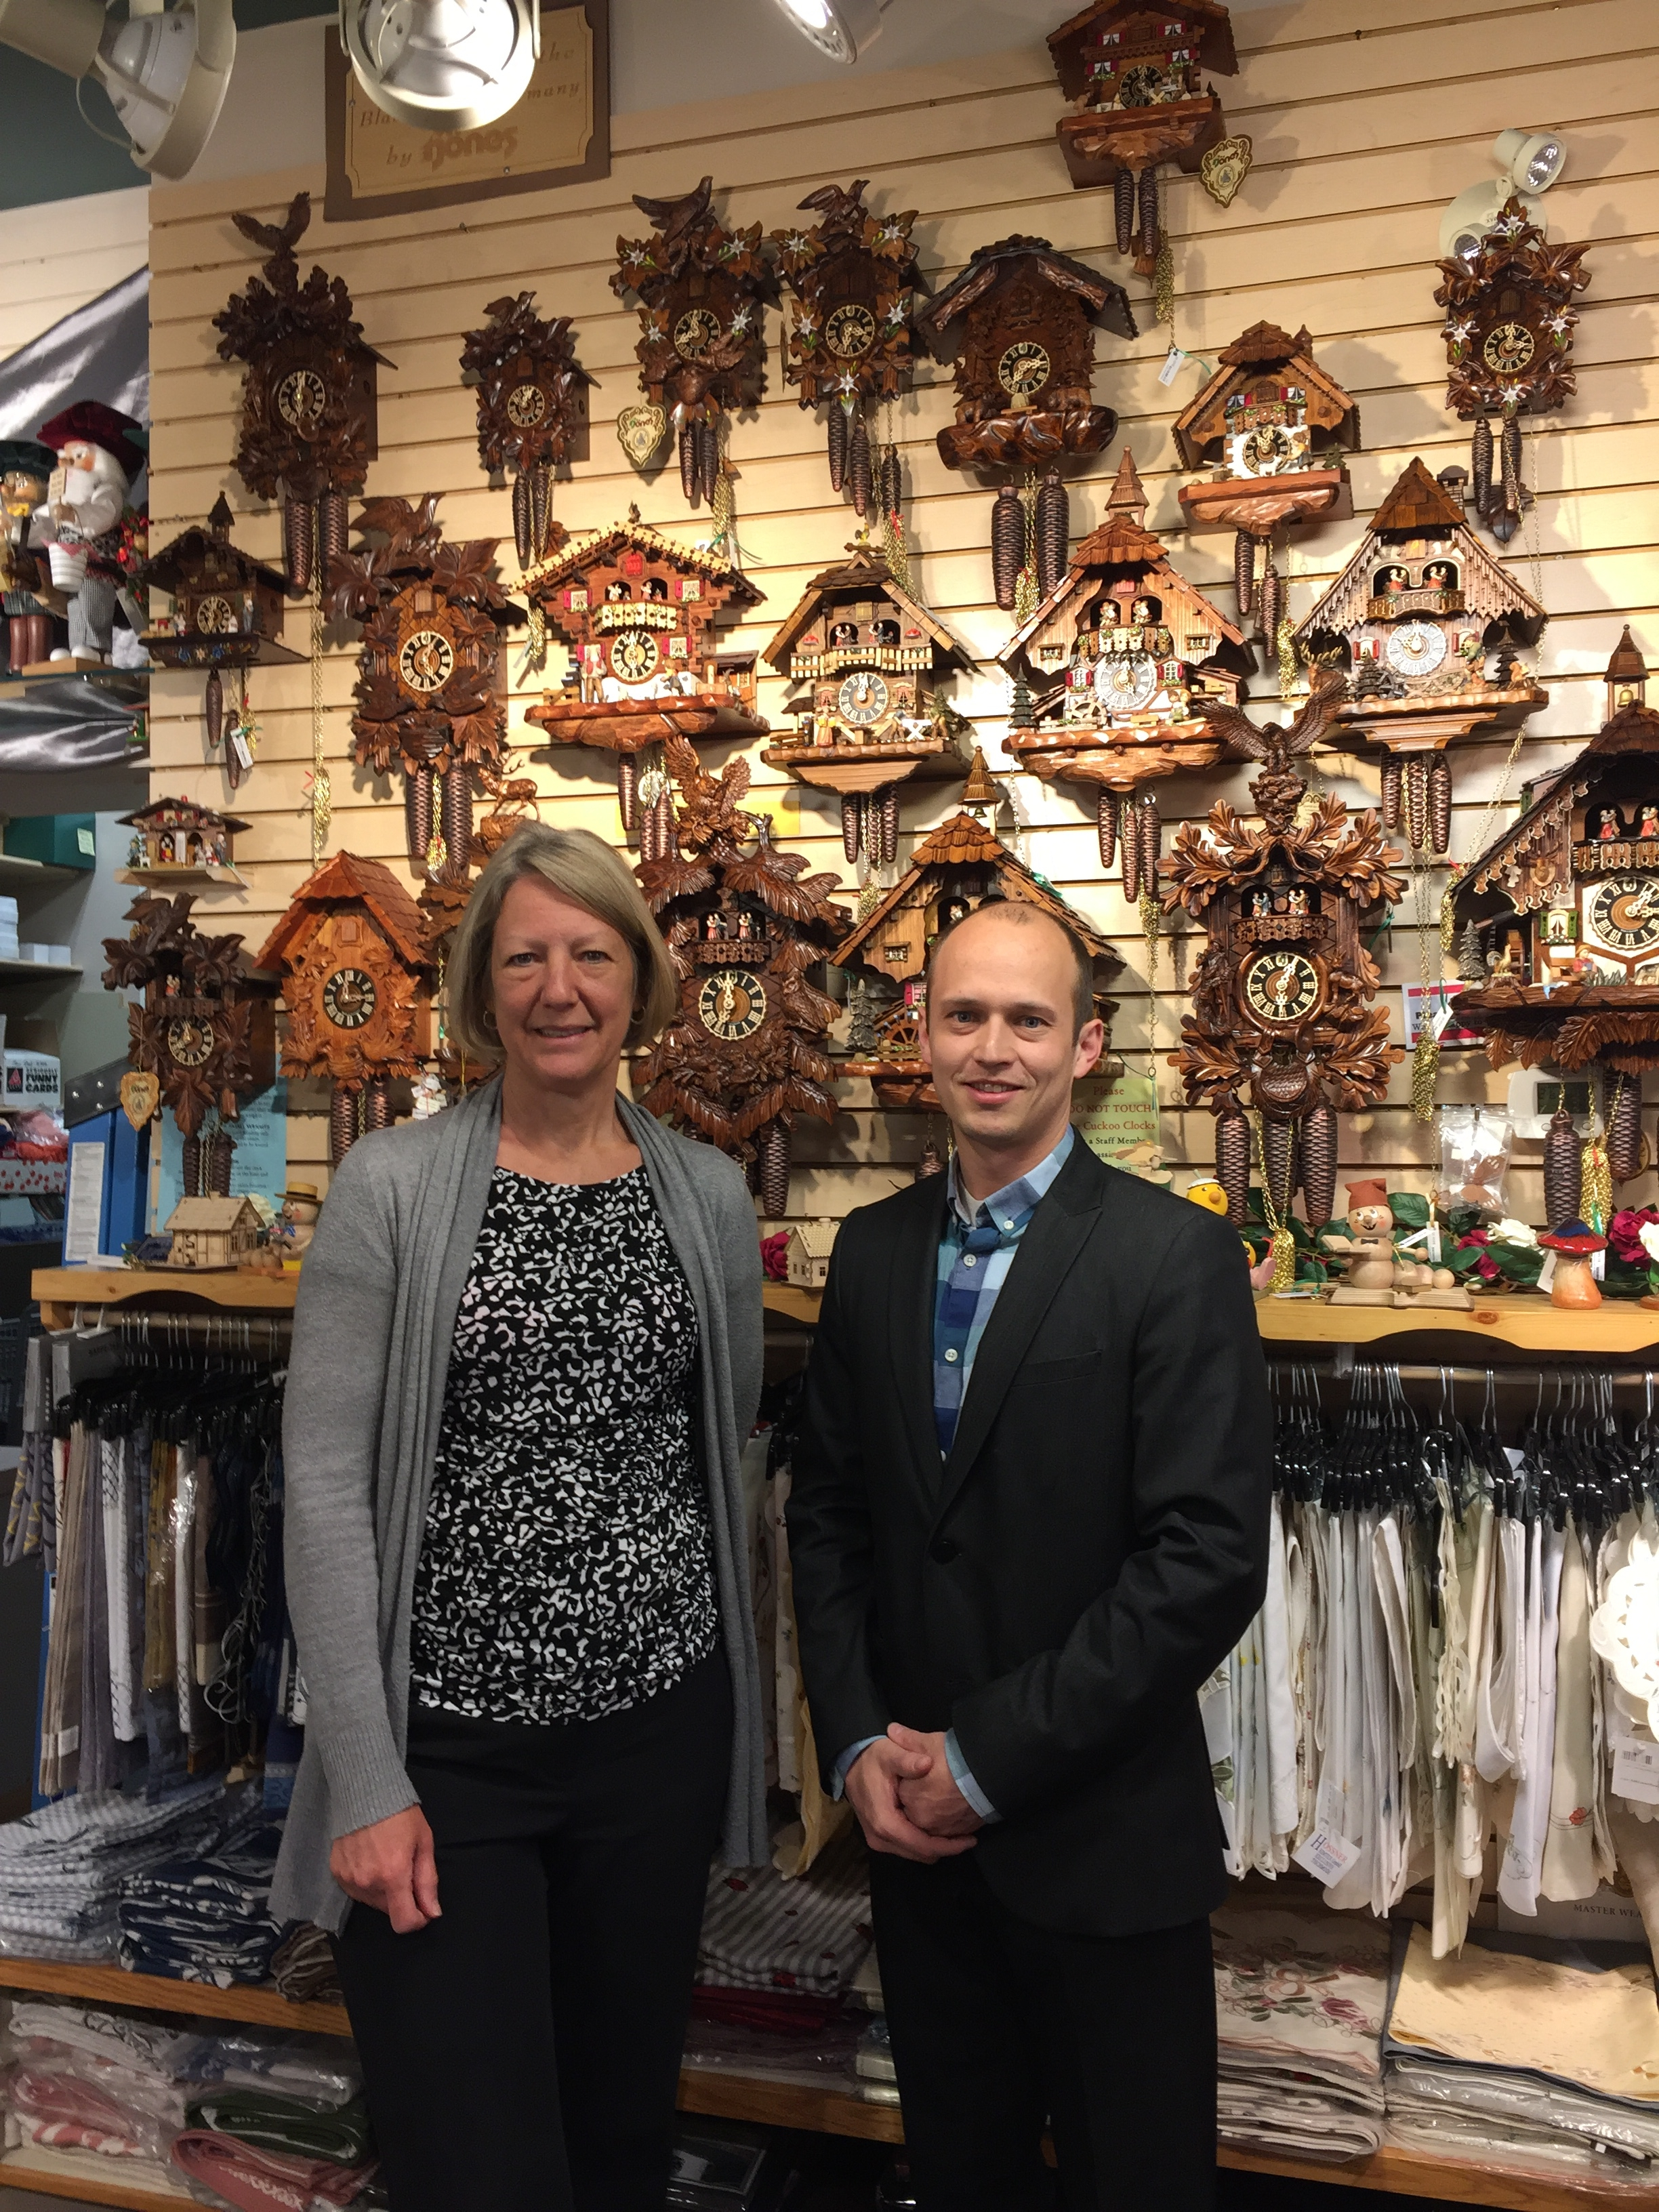 Edelweiss Imports Ltd in Capitol Hill, meet the Owner Marianne Kundert